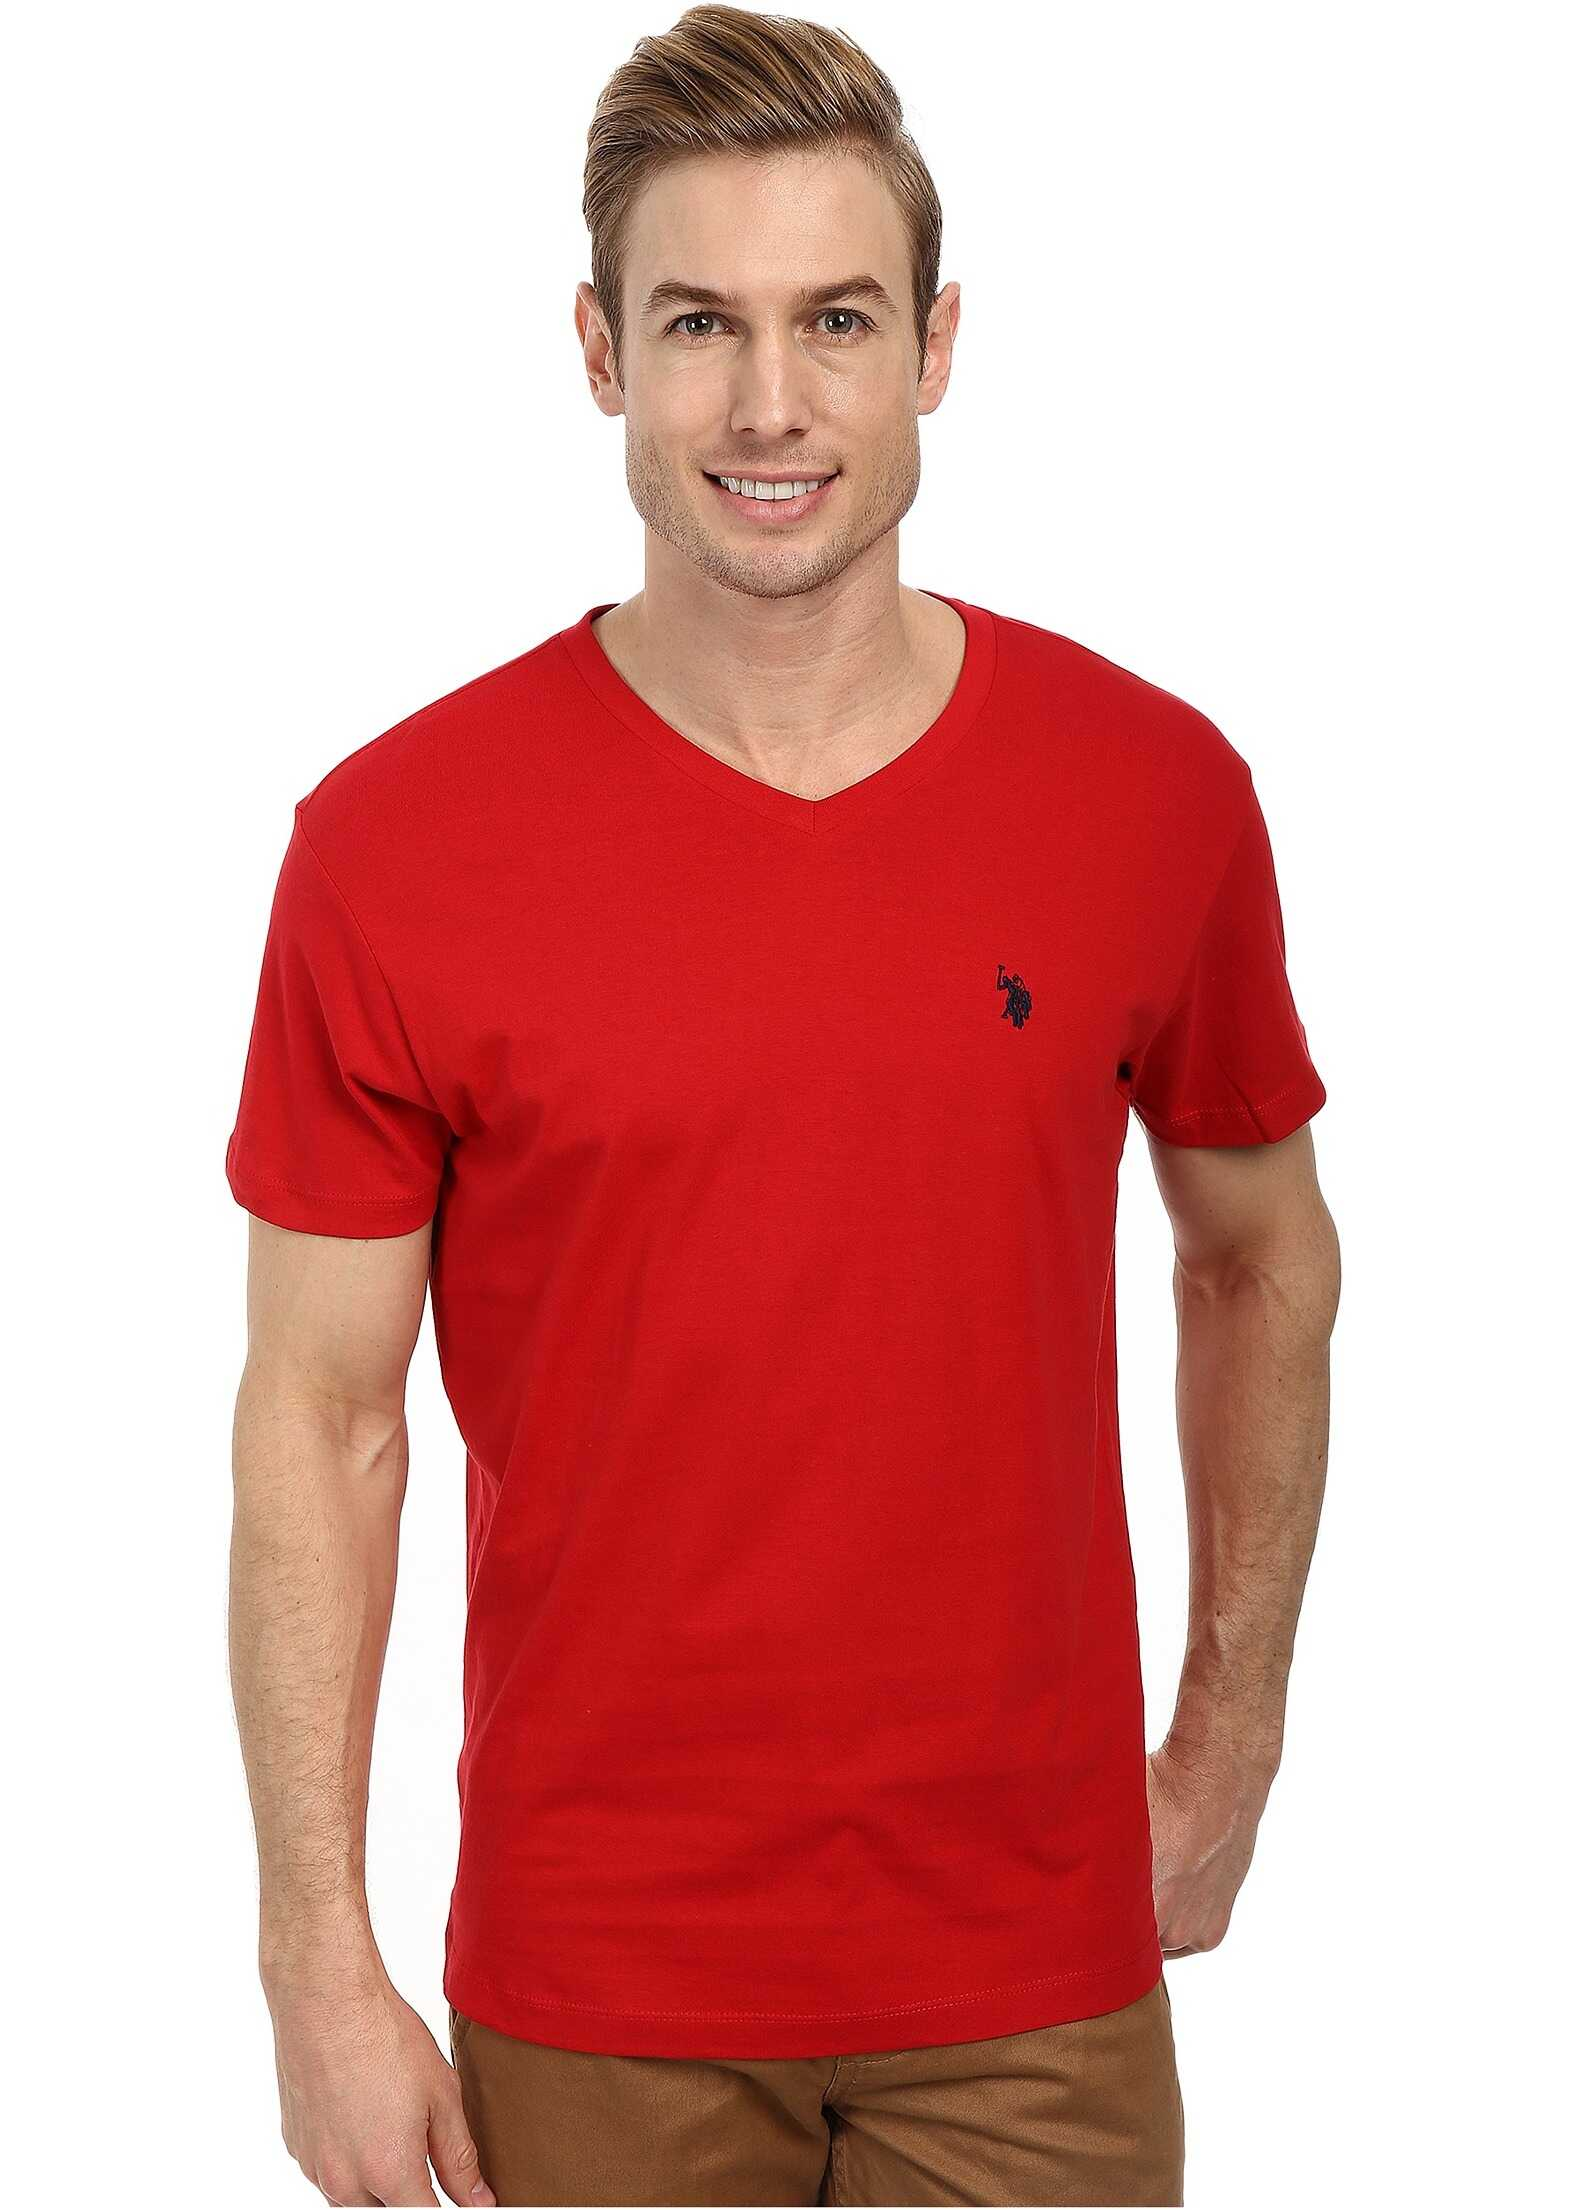 U.S. POLO ASSN. V-Neck Short Sleeve T-Shirt Engine Red